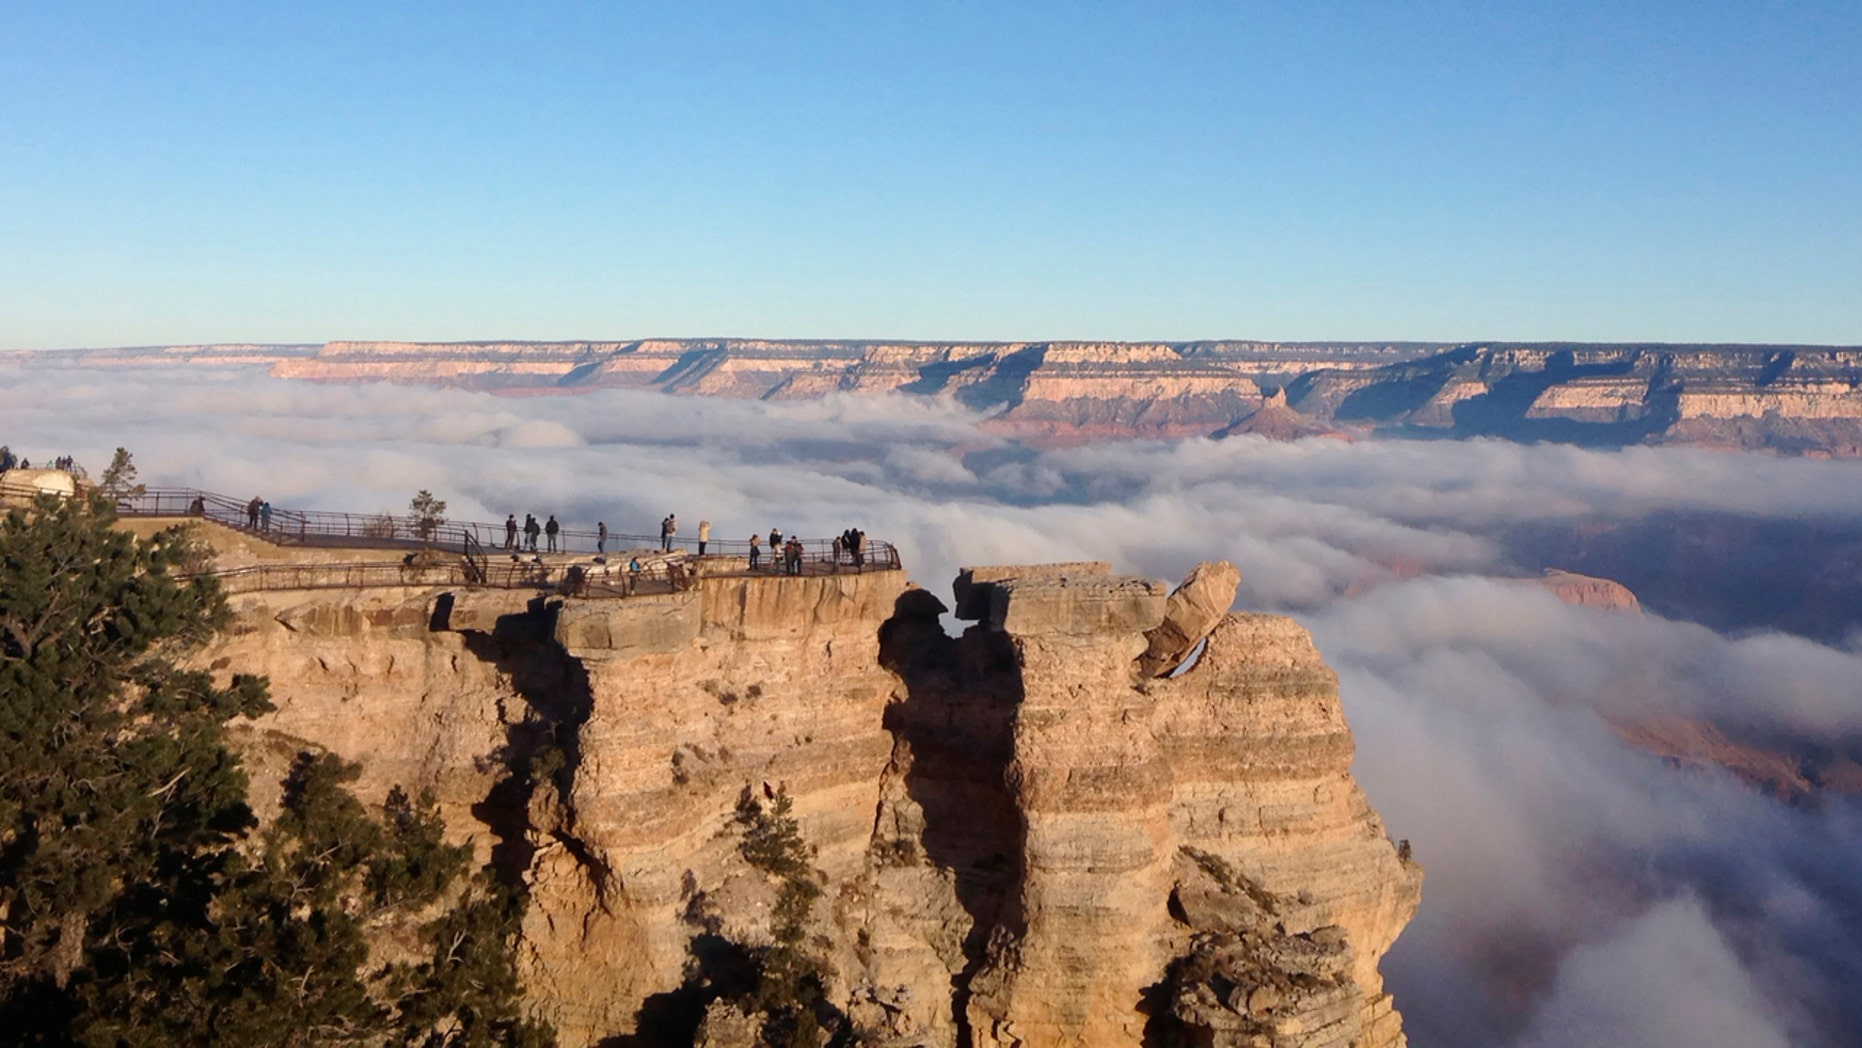 Grand Canyon National Park, one of America's most popular sites, has surpassed its visitation record for the second year in a row.